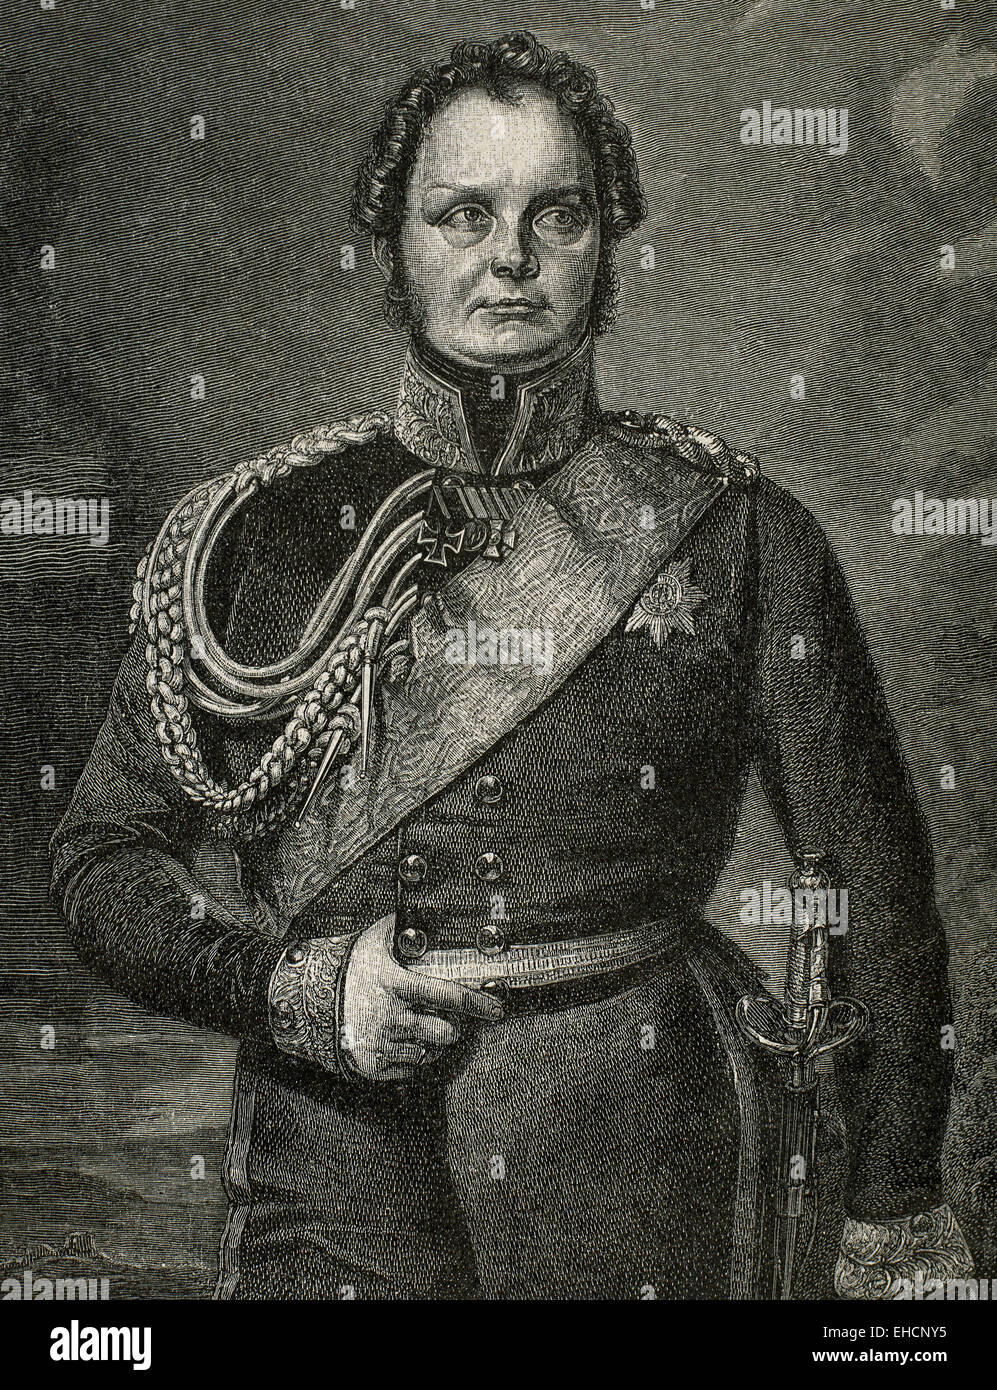 Frederick William IV of Prussia (1795-1861). King of Prusia 1840-1861. Portrait. Engraving by Niedermann. 19th century. - Stock Image